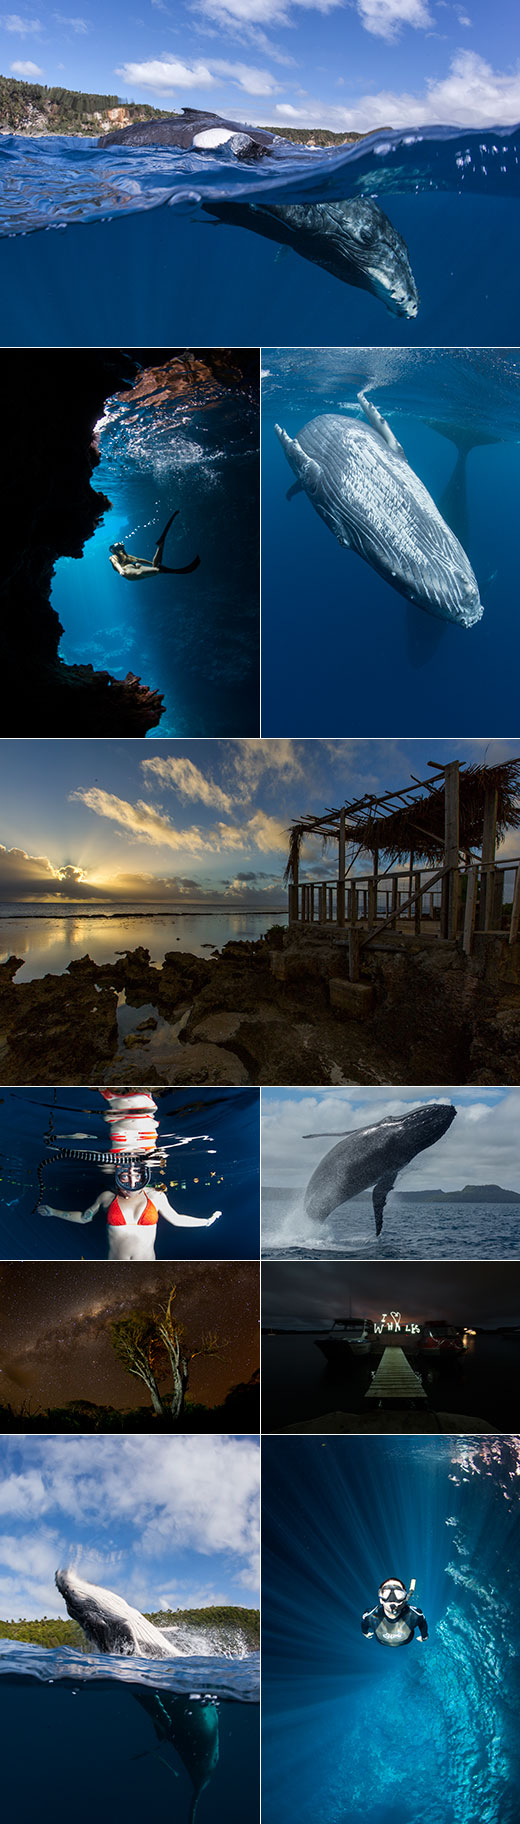 Tonga 2014 Season collage whales caves light writing